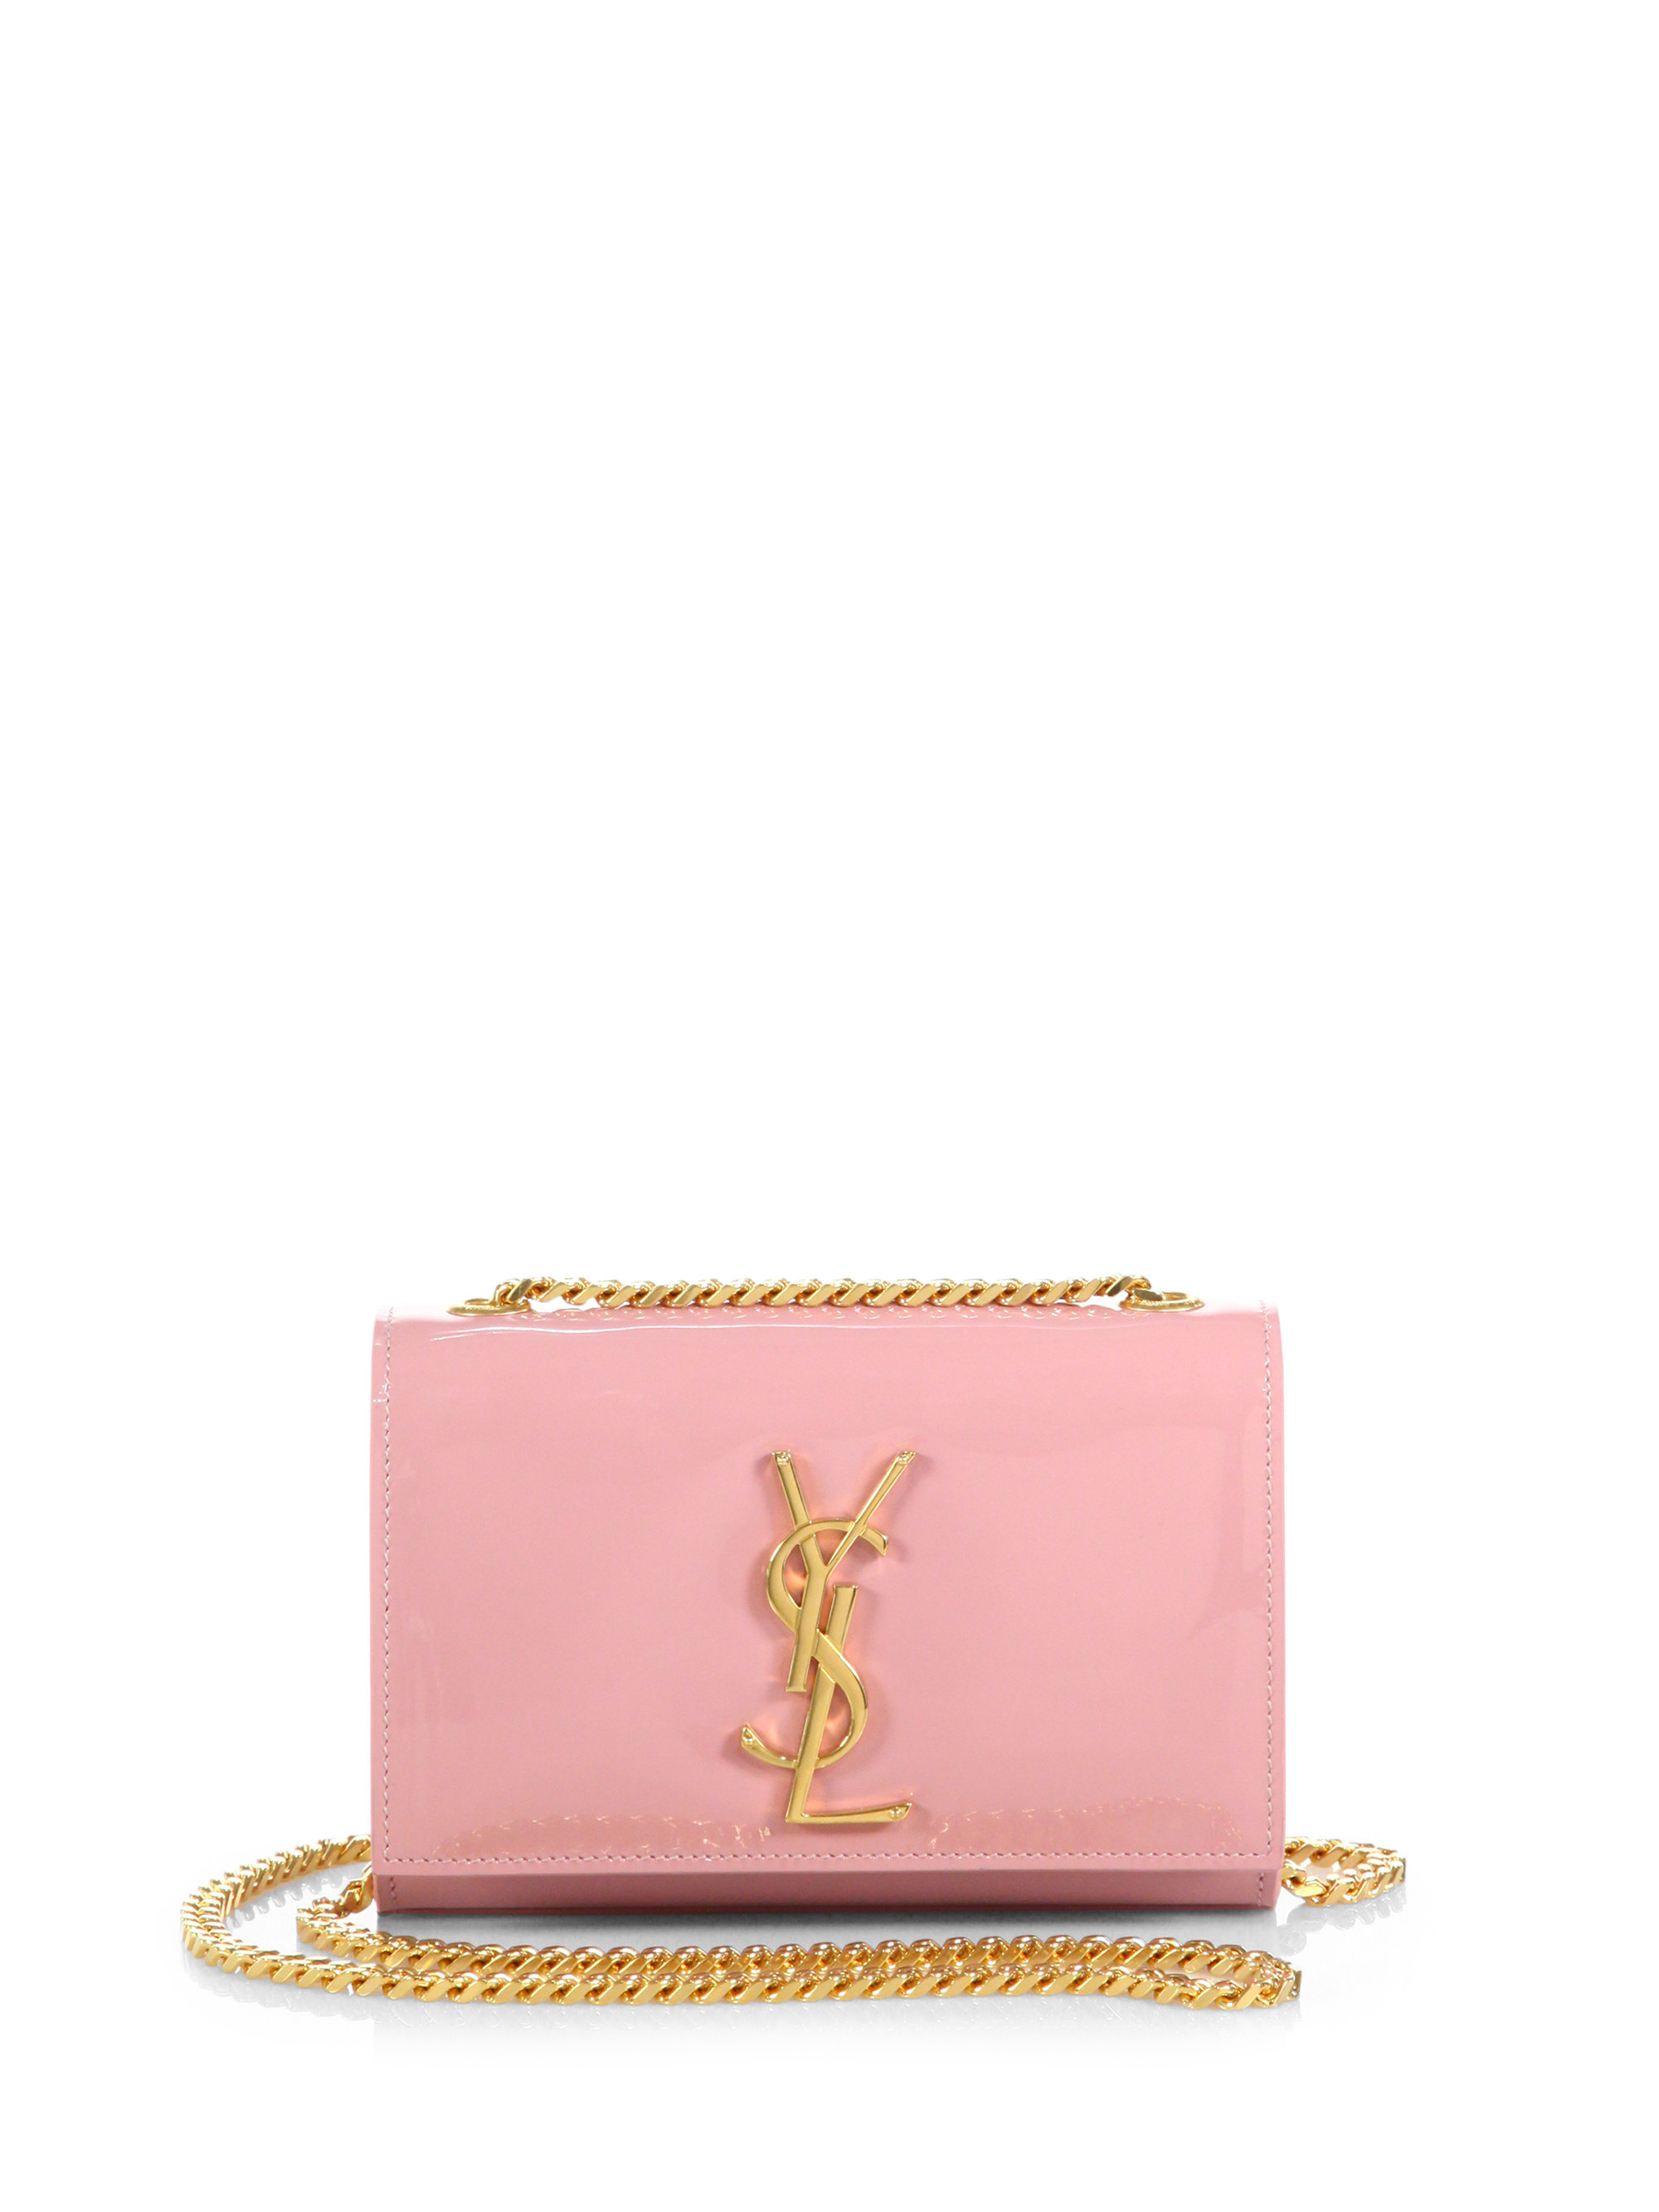 Lyst - Saint Laurent Monogram Small Patent Leather Chain Crossbody ... b0447e19f5